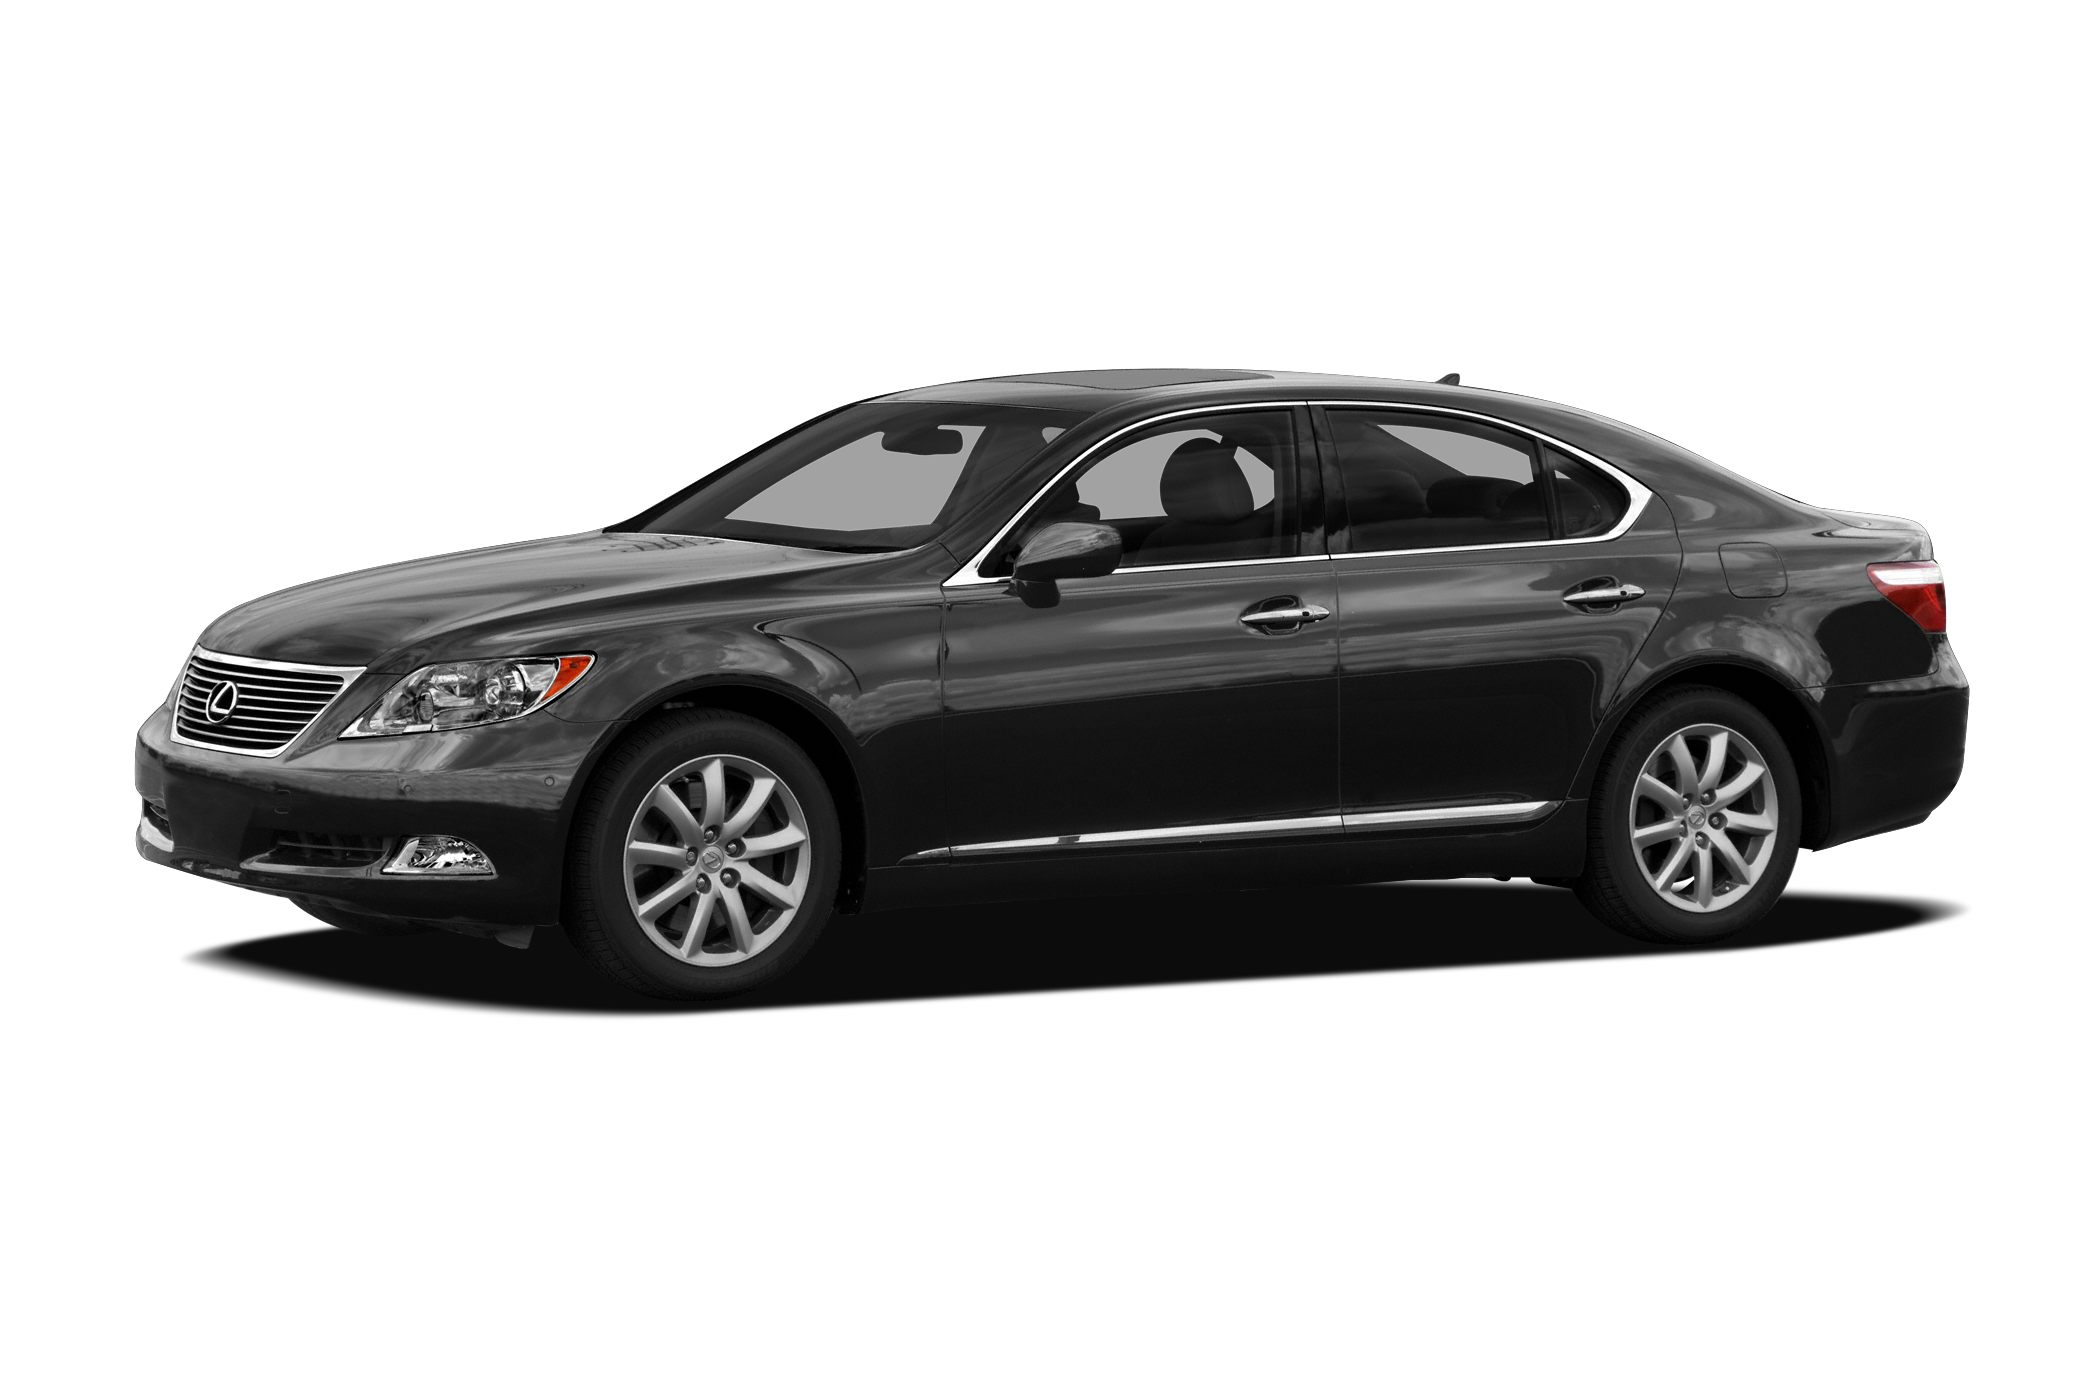 2009 Lexus LS 460 L Sedan for sale in Manchester for $24,500 with 103,328 miles